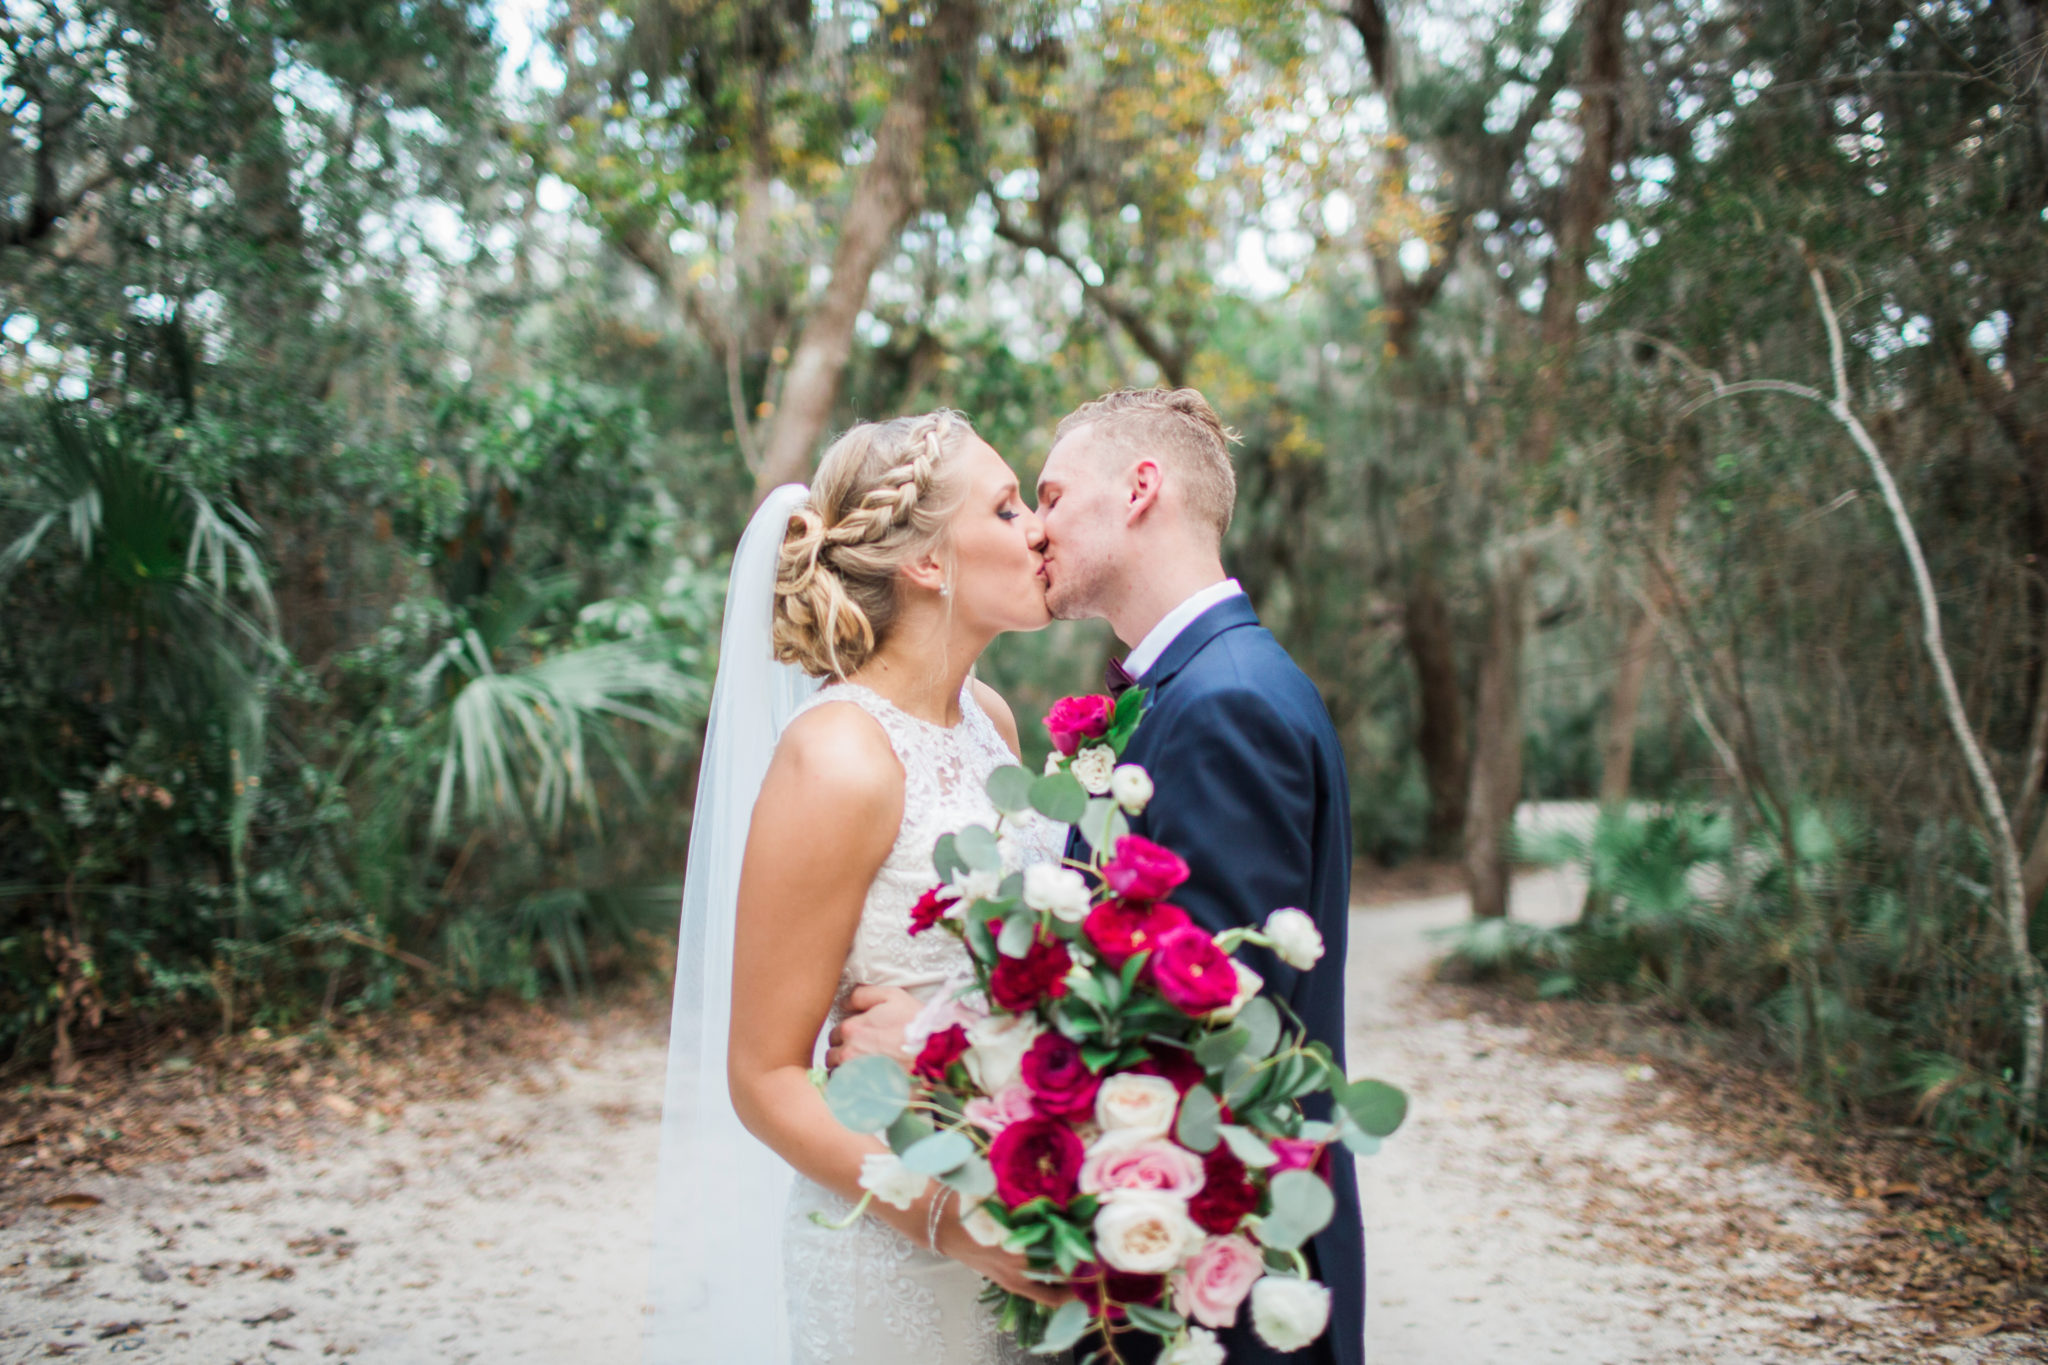 Natalie Broach Photography Walker's Landing Bride and Groom Romantic Kiss